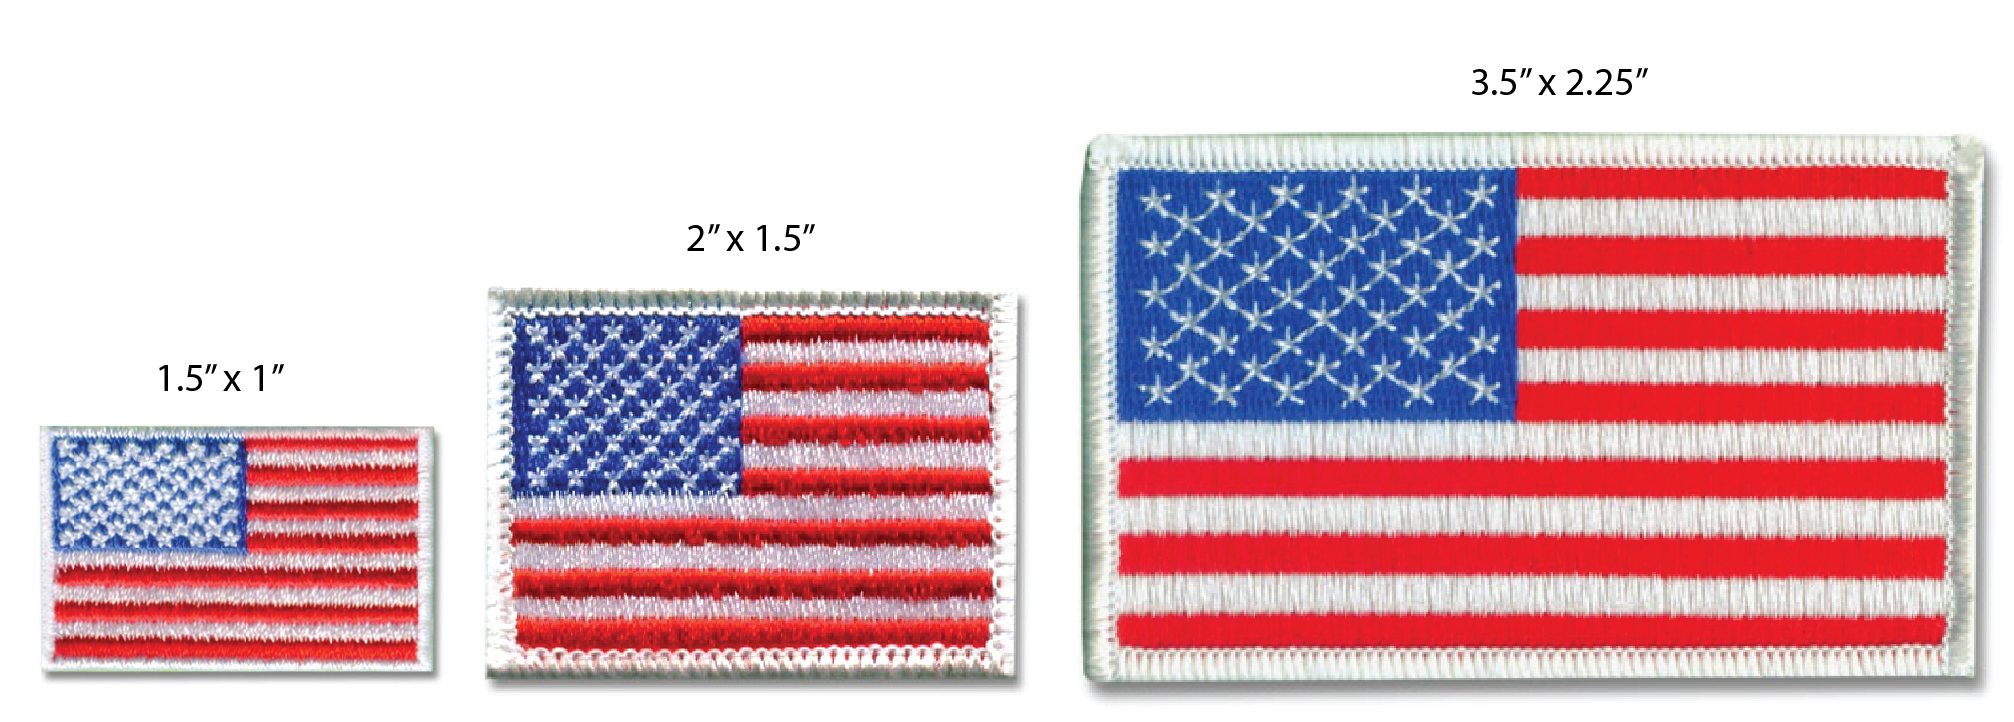 Comparison of patch sizes American Flag